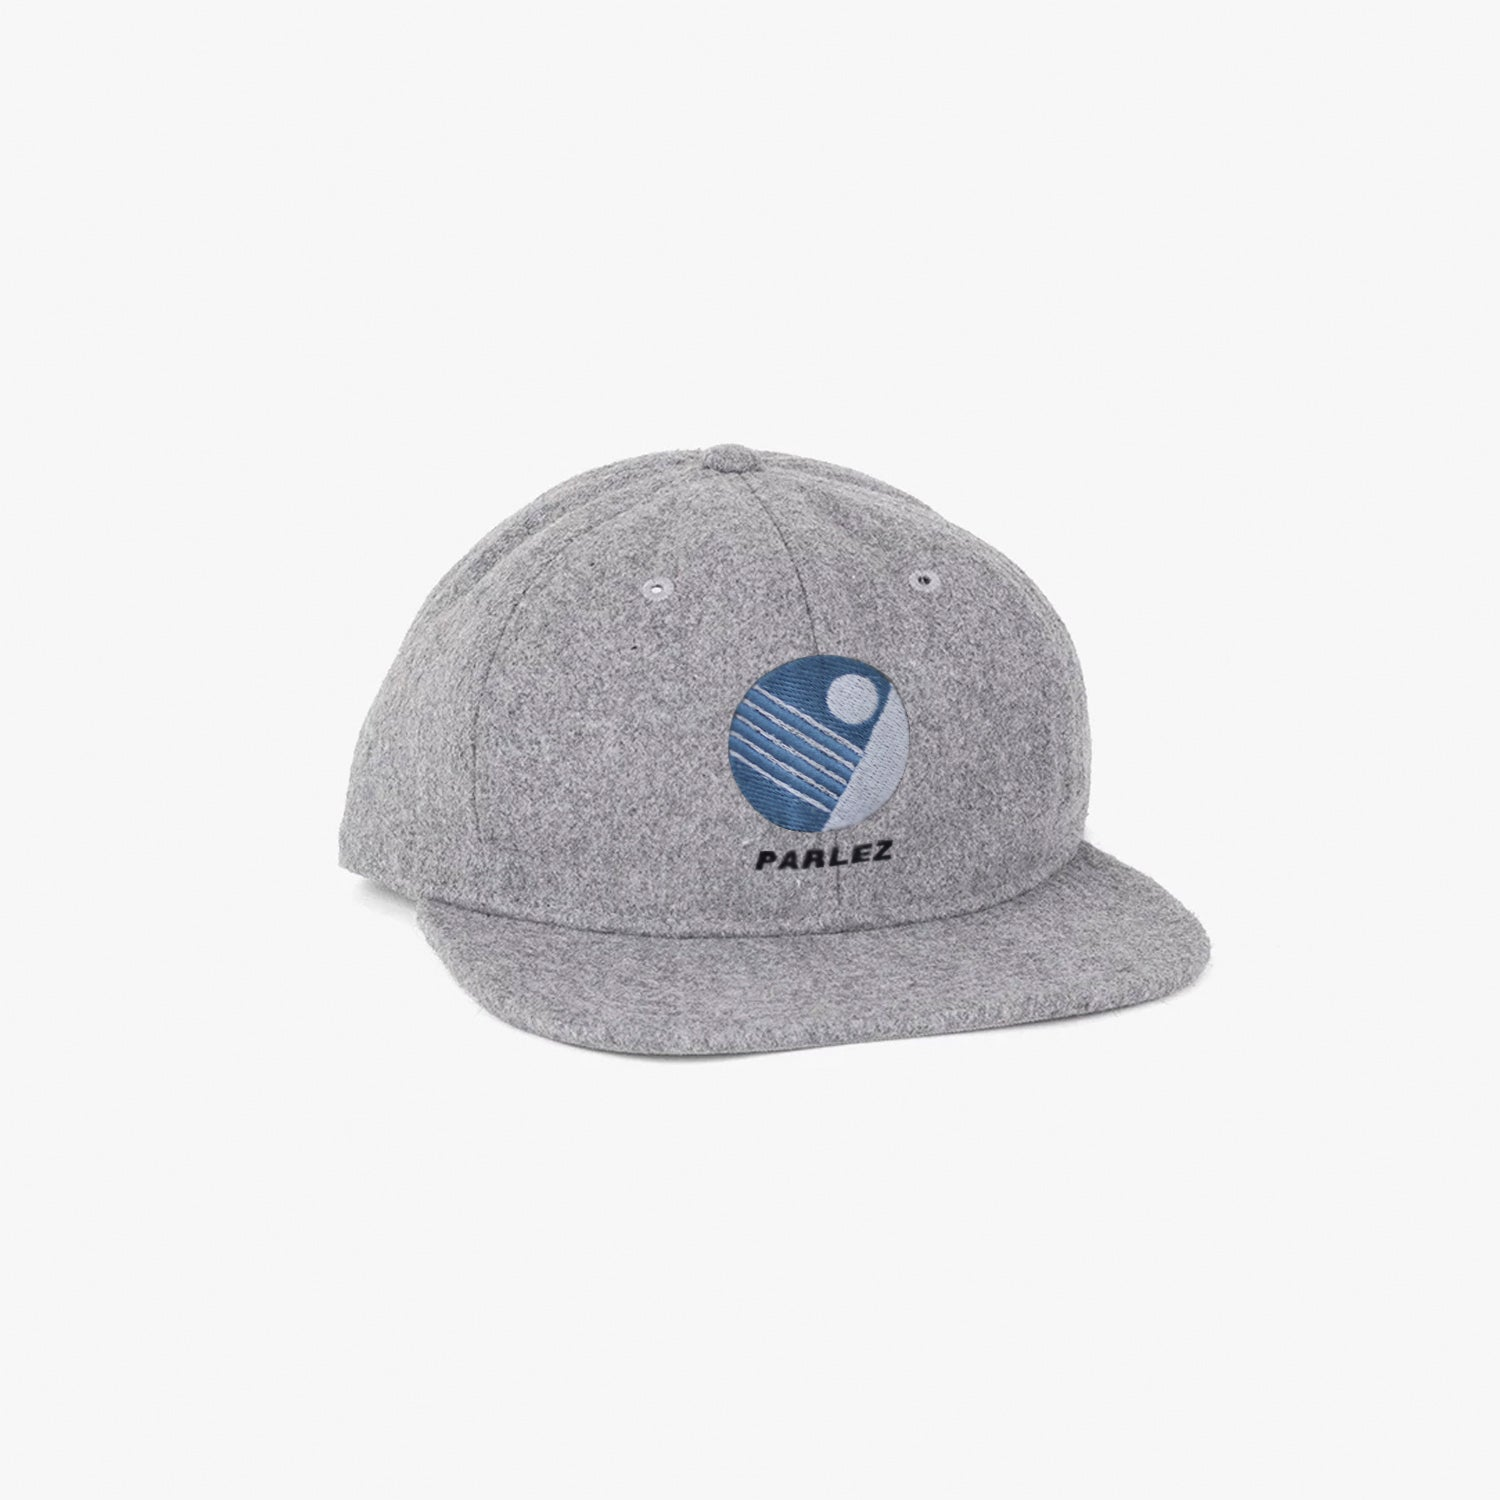 Parlez x Jingo Wool 6 Panel Heather